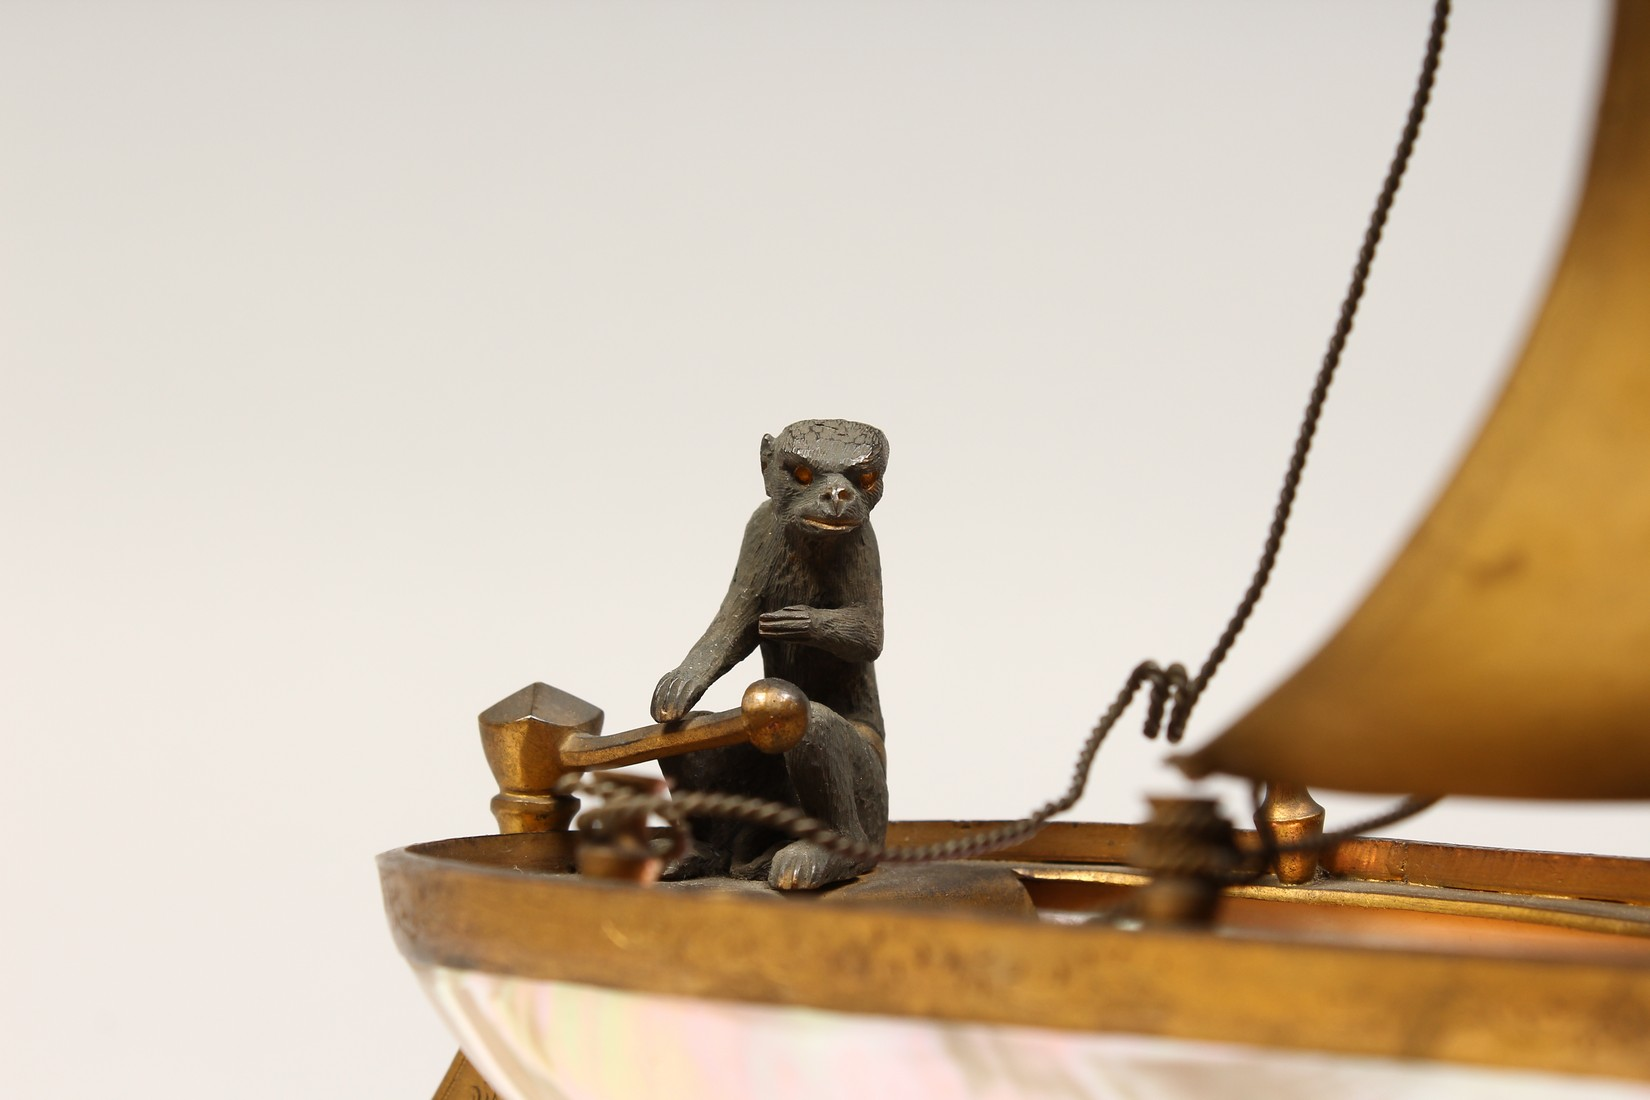 AN UNUSUAL LATE 19TH CENTURY FRENCH ORMOLU MOUNTED SHELL, mounted as a small sailing dinghy, a - Image 2 of 6